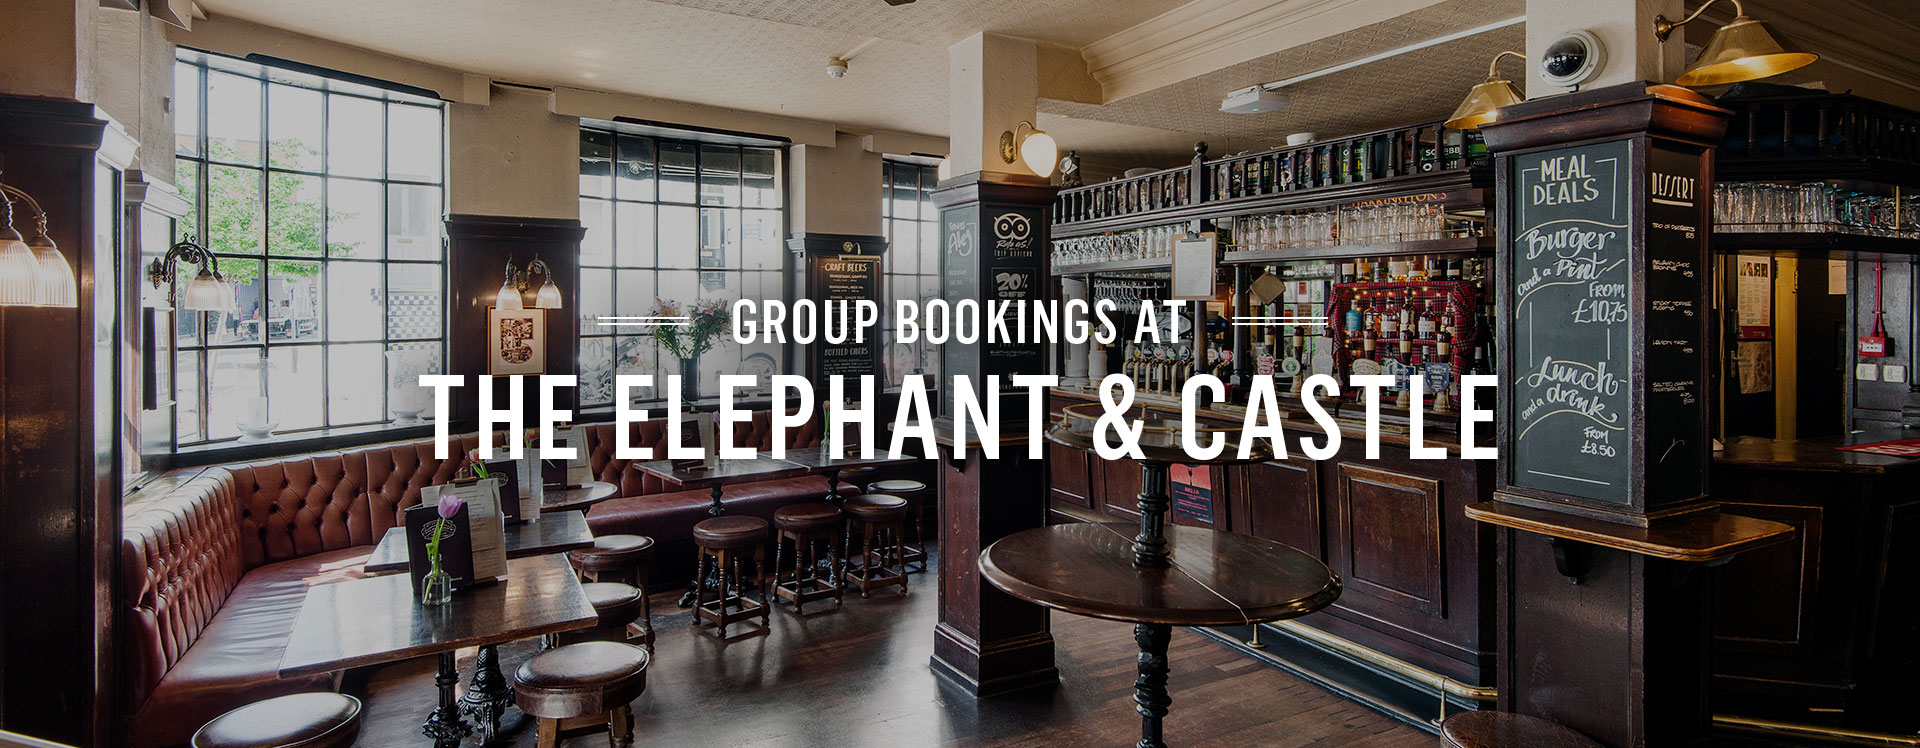 Group Bookings at The Elephant and Castle